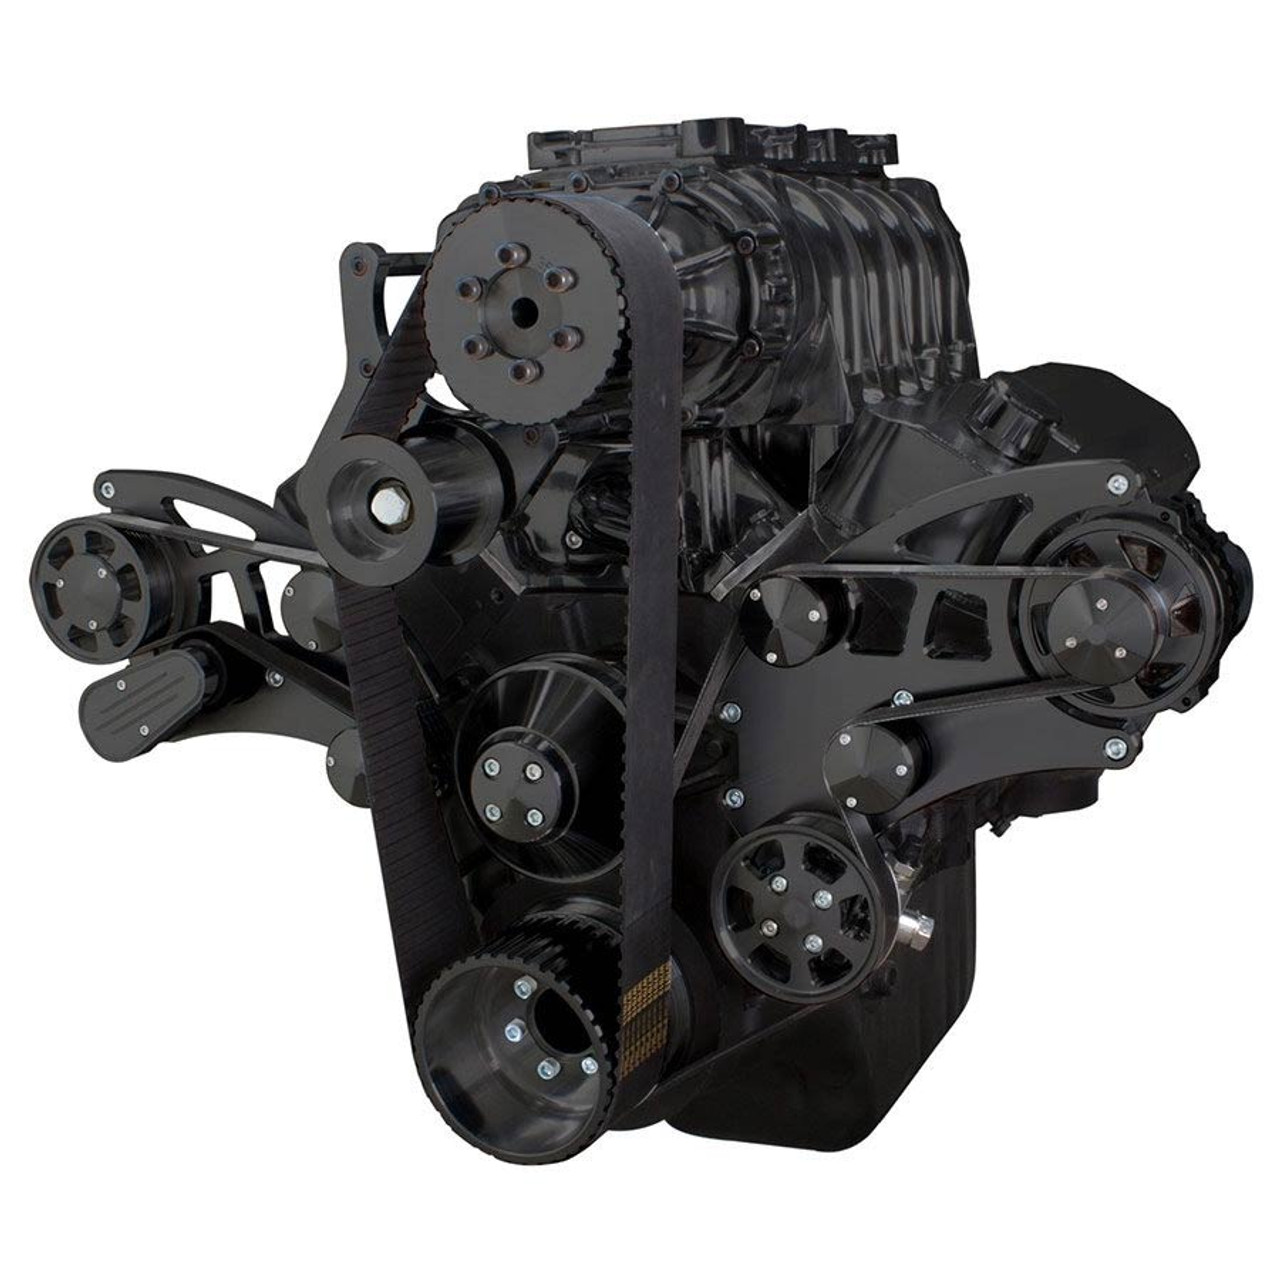 Black Serpentine System for 396, 427 & 454 Supercharger - Power Steering &  Alternator - All Inclusive